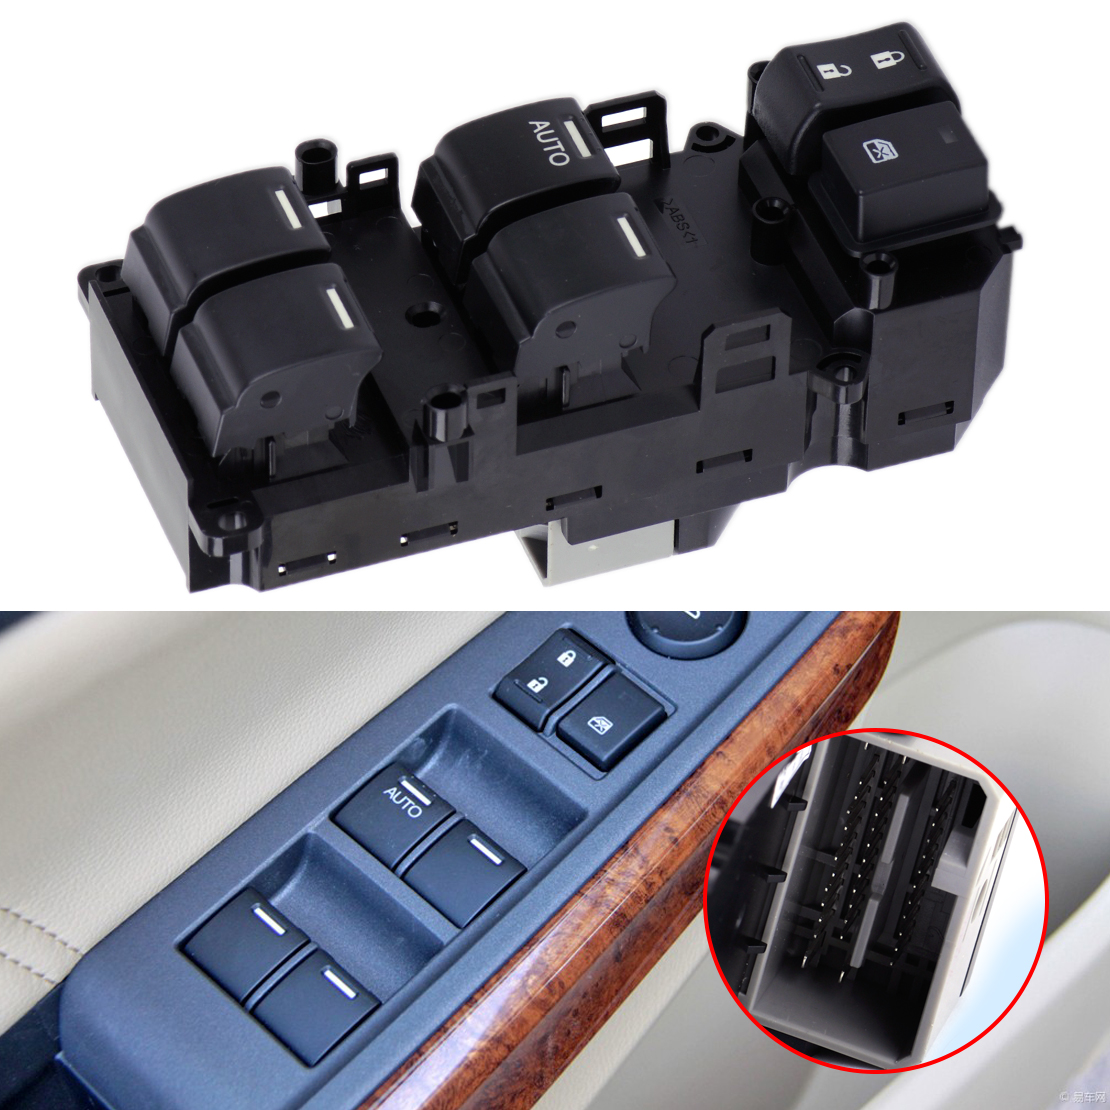 CITALL Front Left Driver Side Master Power Window Switch 35750-TBD-H13 Fit for Honda Accord 2008 2009 2010 2011 for hyundai elantra front left driver side master power window switch 2001 02 03 04 05 2006 93570 2d000